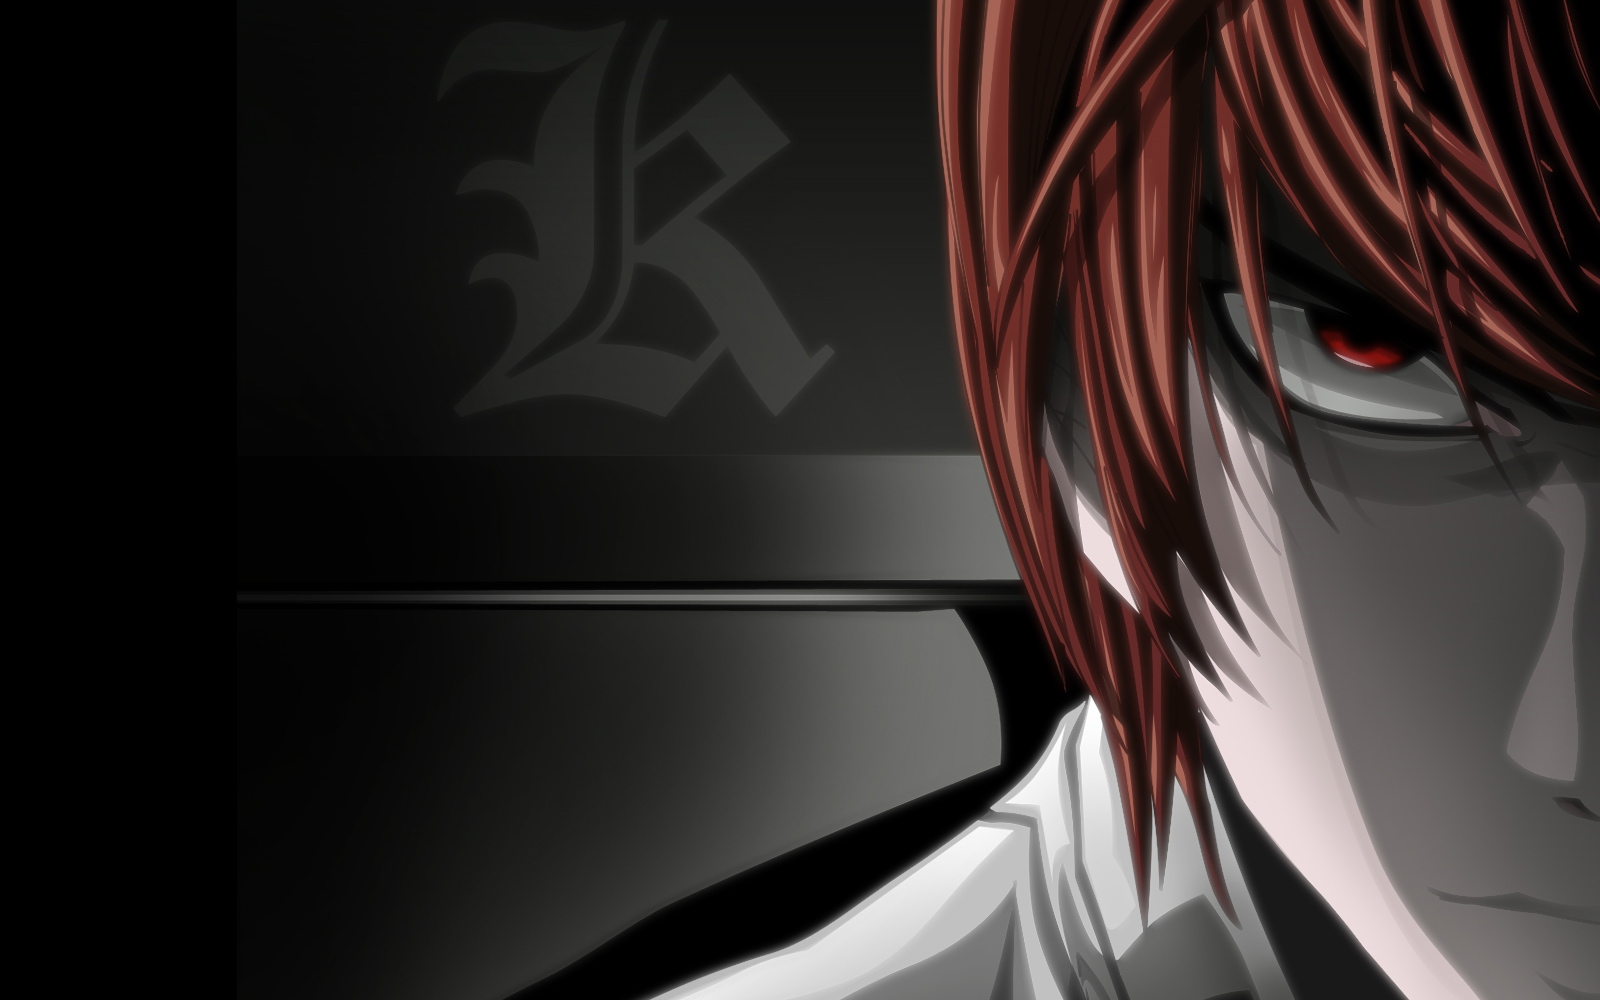 Death Note Wallpapers kira eyes